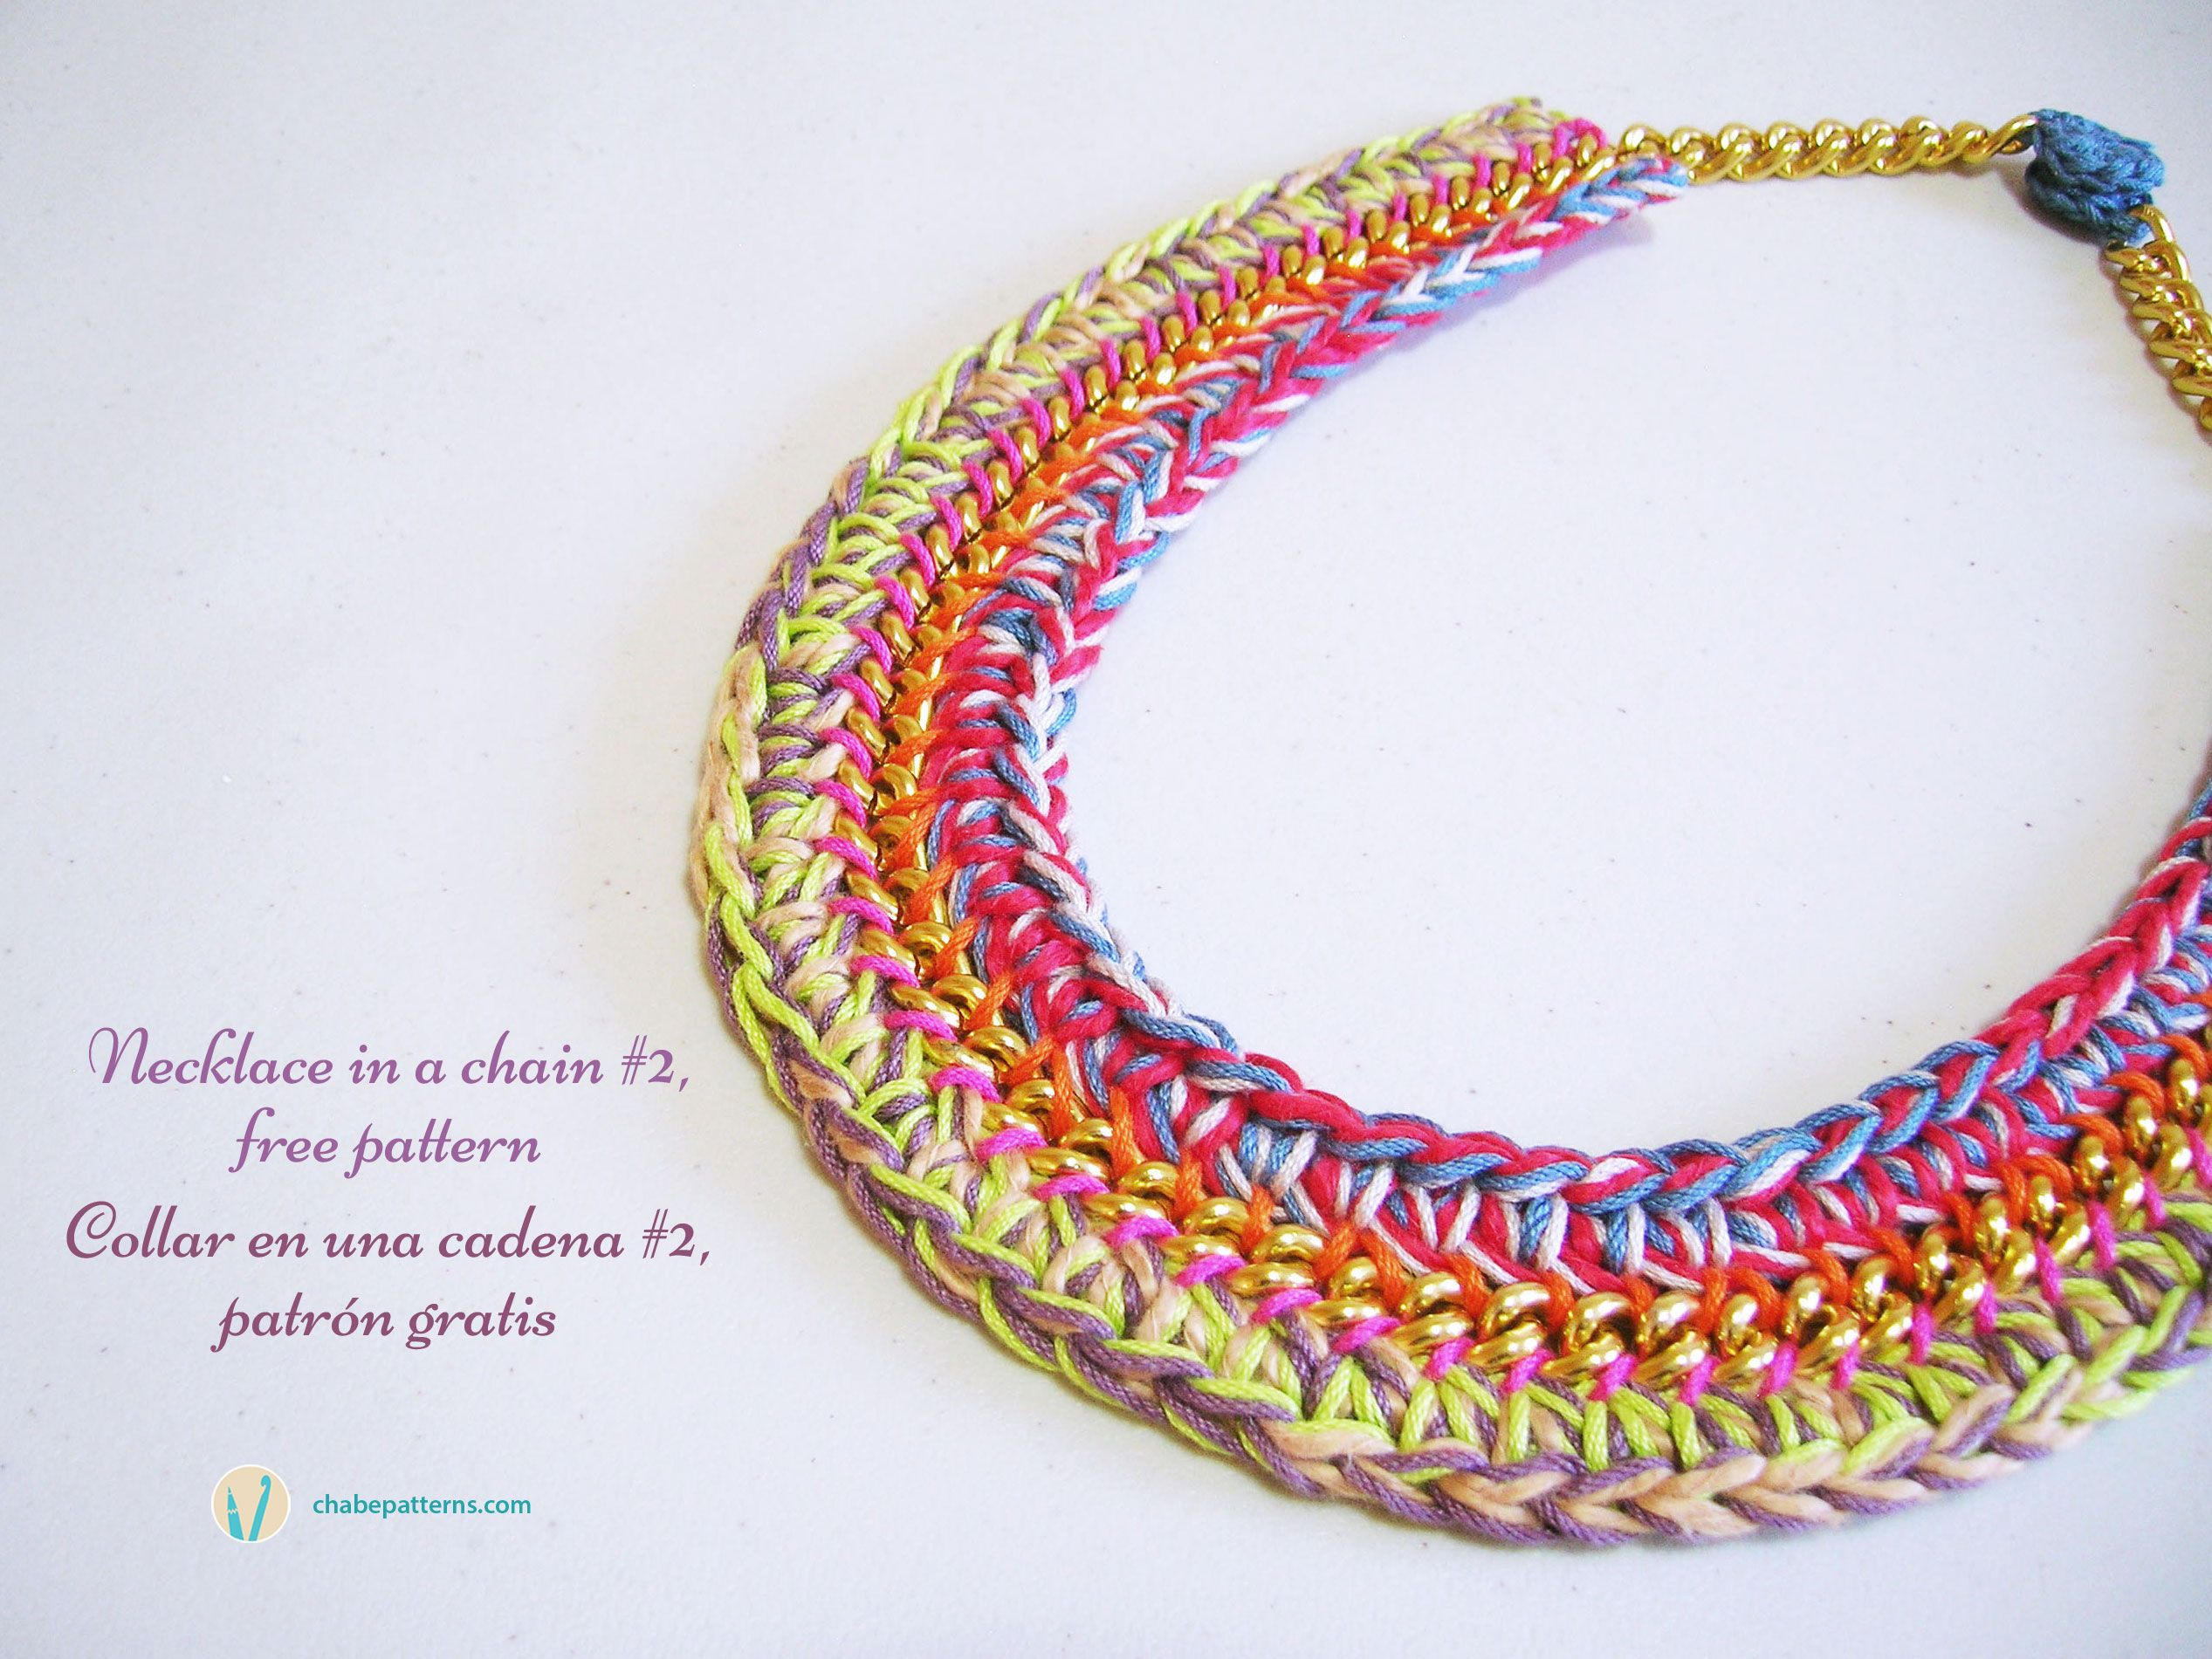 Necklace in a chain #2, free crochet pattern, photo tutorial ...